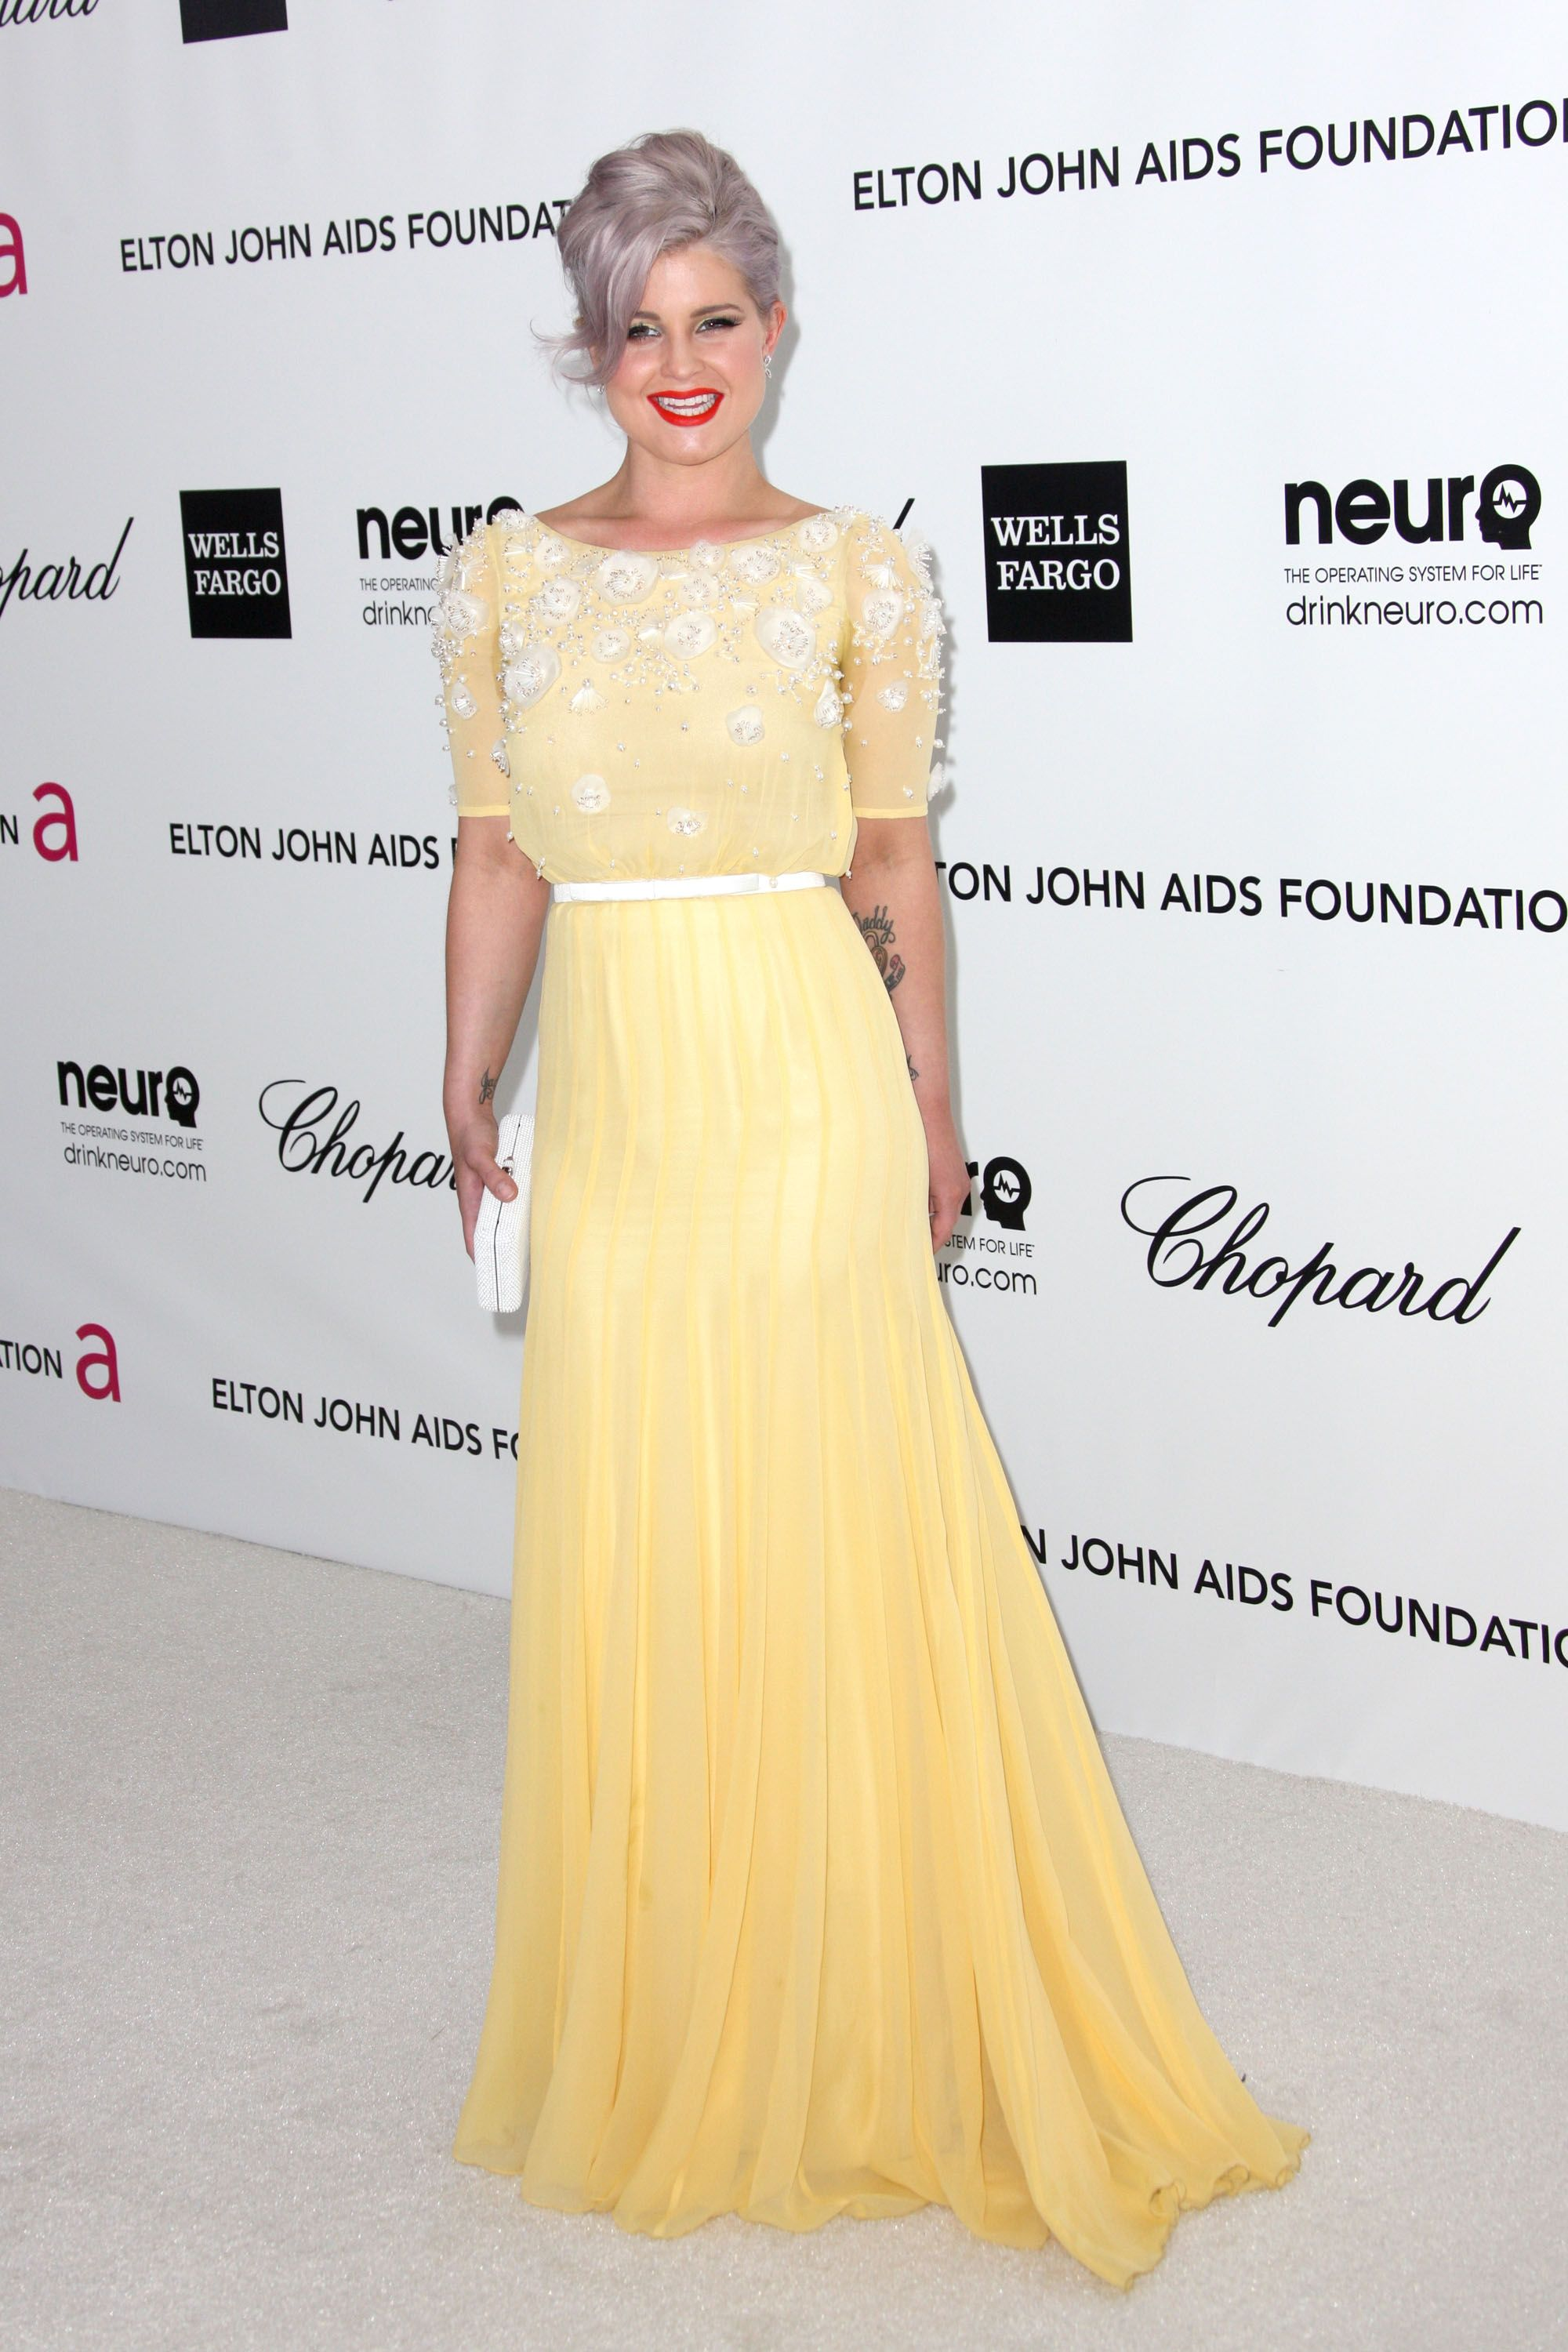 Kelly osbourne went for a sweet style in a daffodil yellow gown by